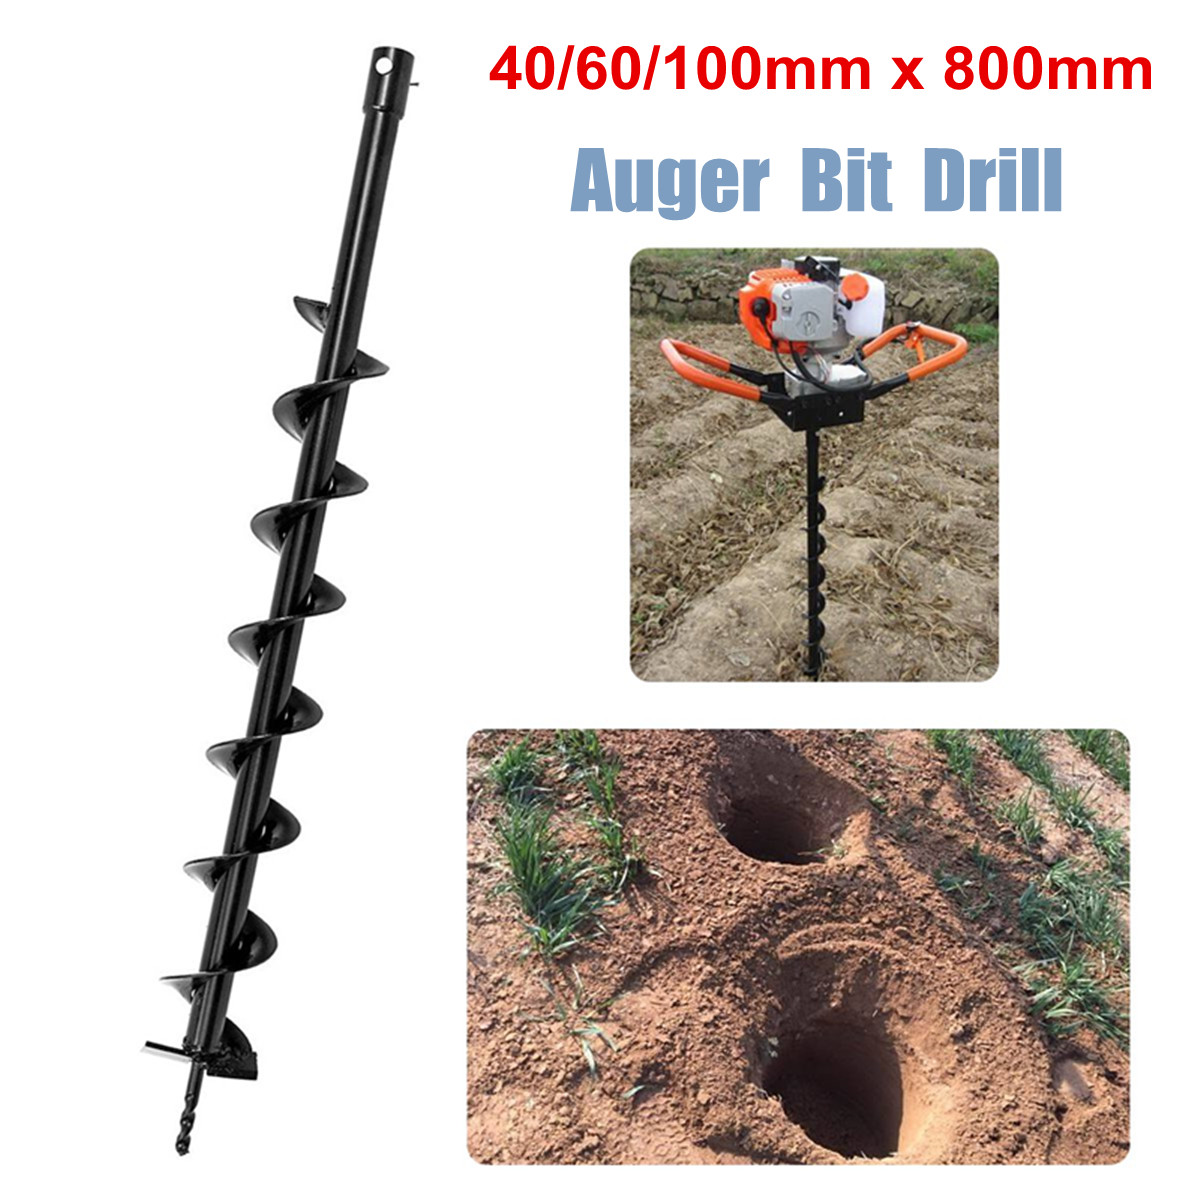 40/60/100mm X 800mm Augers Drill Bit Fence Borer Earth Petrol Post Holes Digger Garden Power Tools Accessories Black